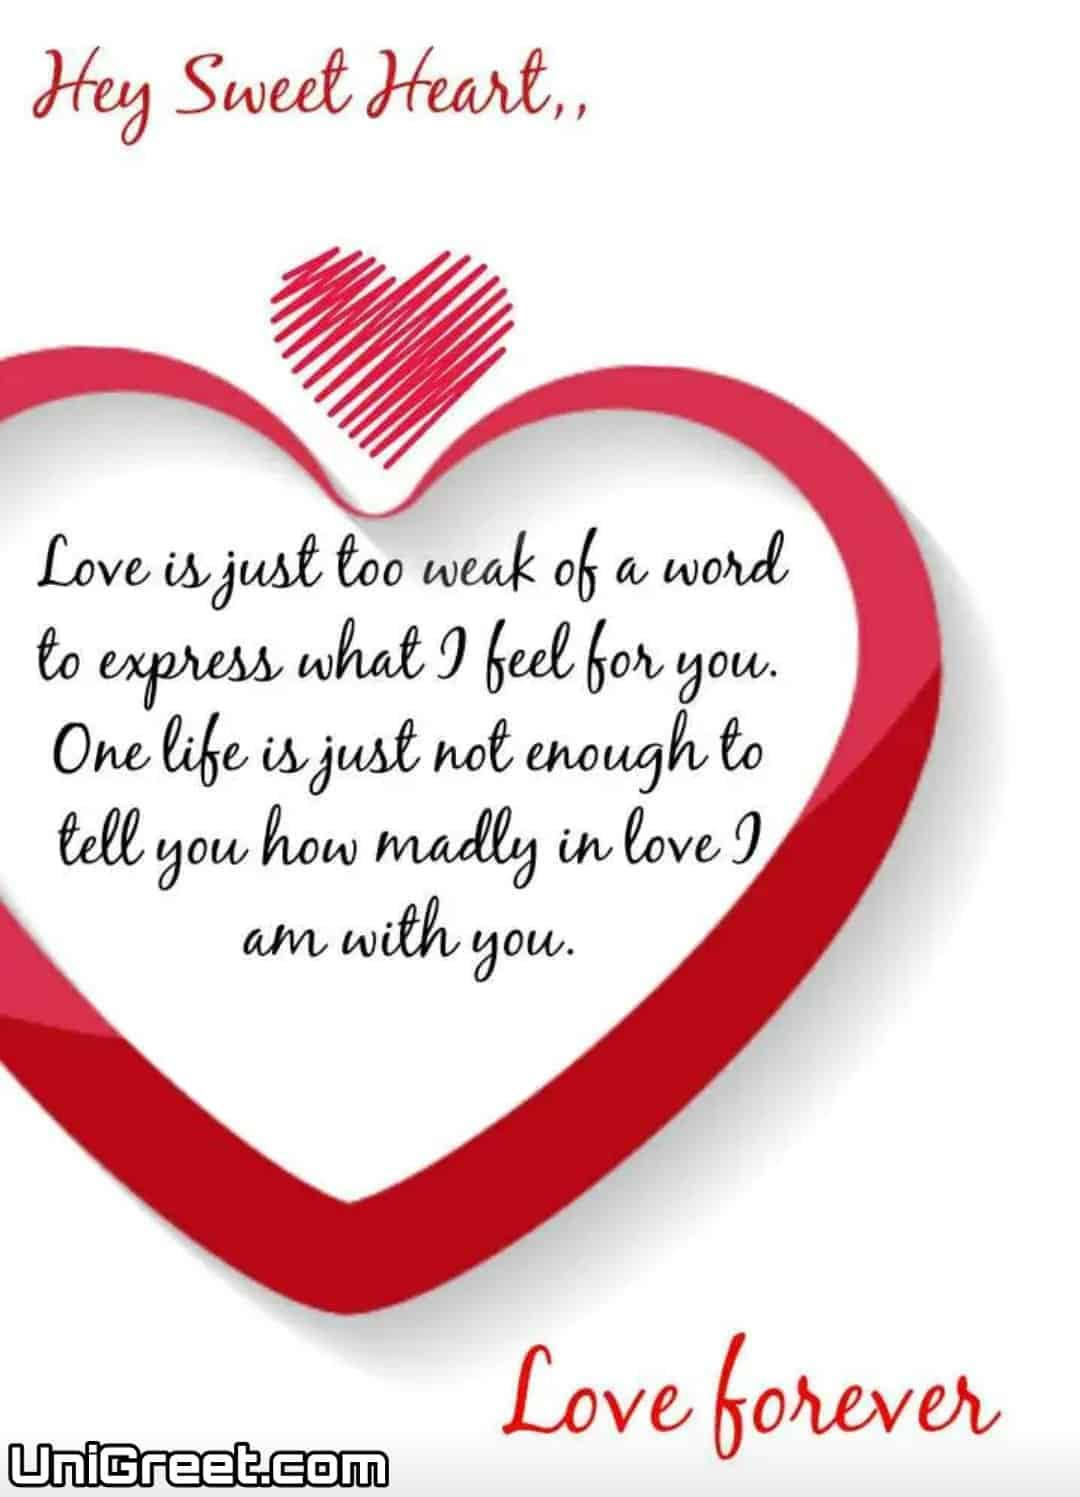 100 True Love Quotes Images In English Deep Love Quotes Pics For Him Her